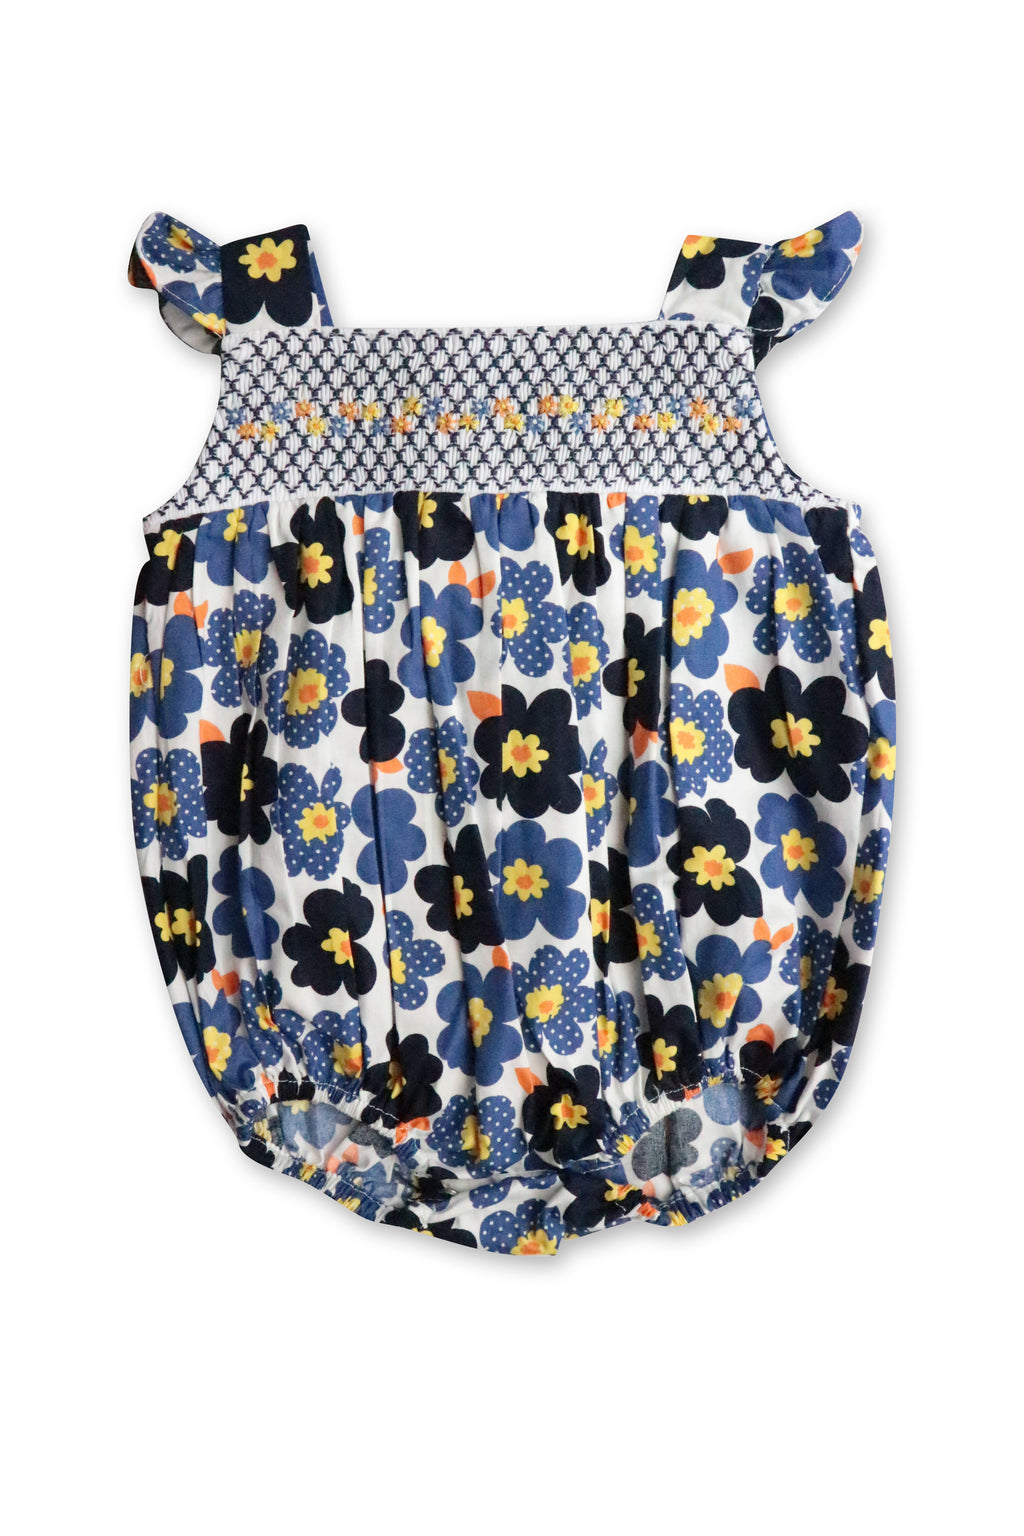 Willow & Jagg Playsuit size 000 (0-3M)